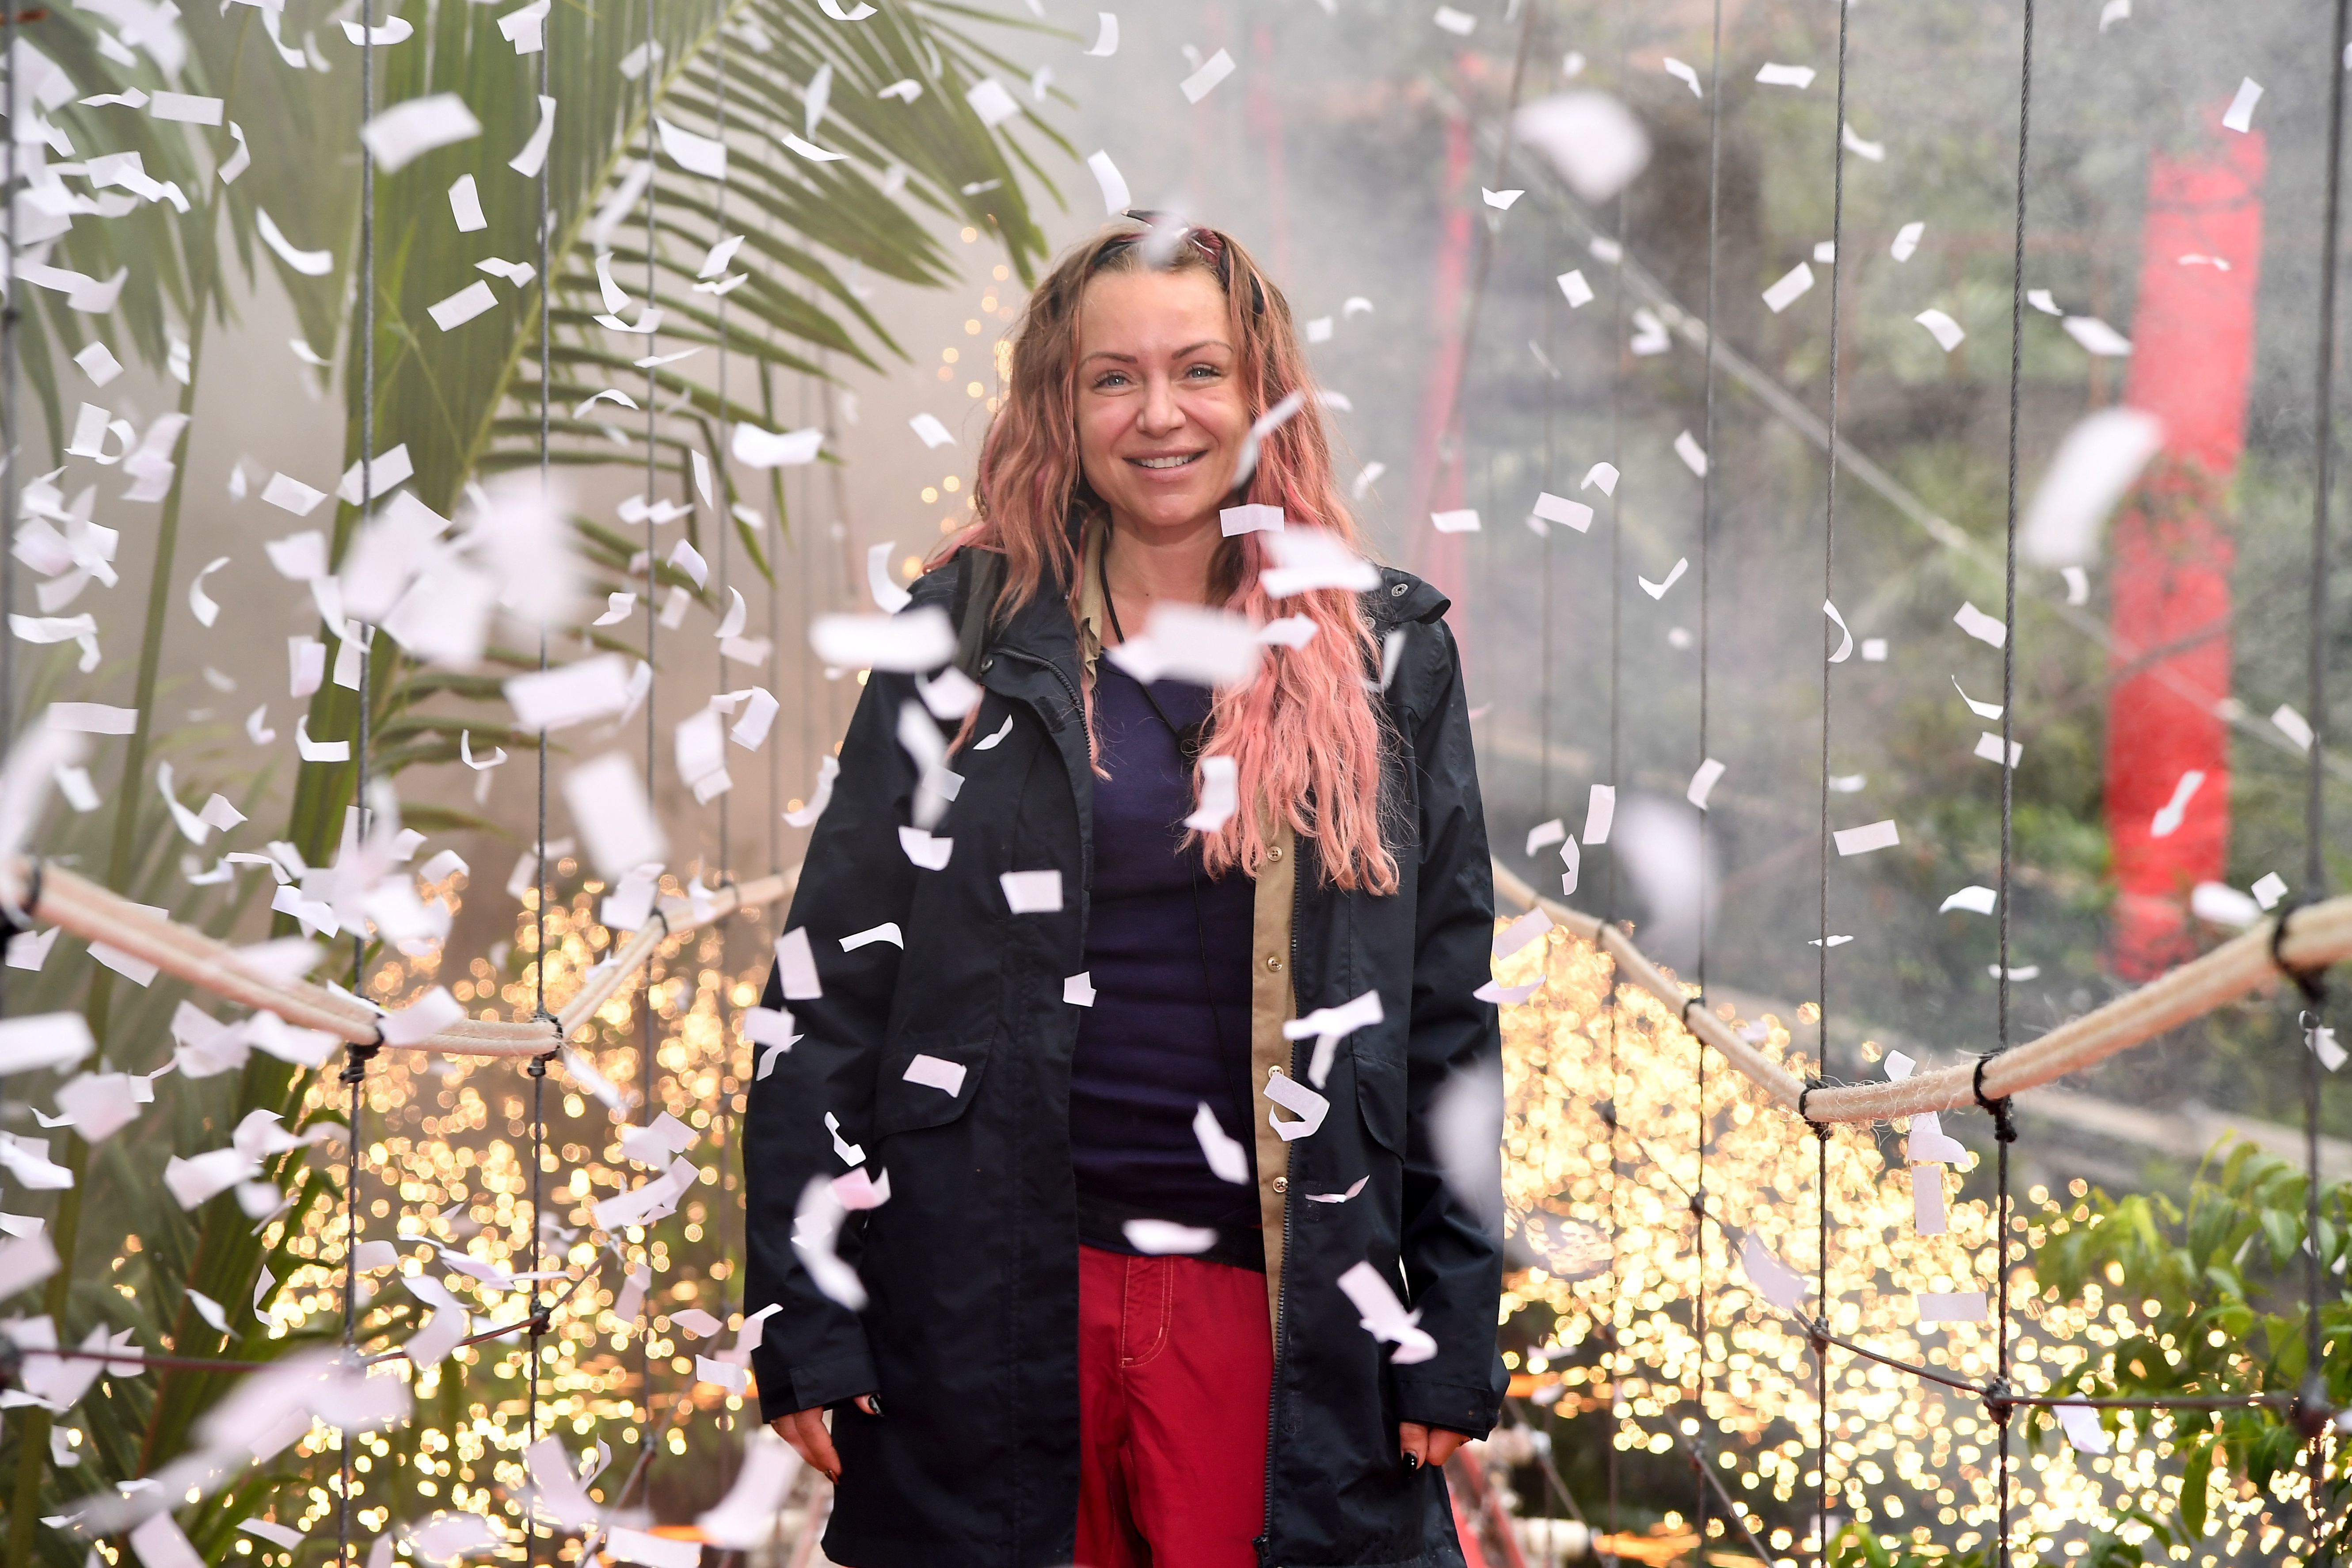 Rita Simons Is The Latest Star To Leave The 'I'm A Celebrity'